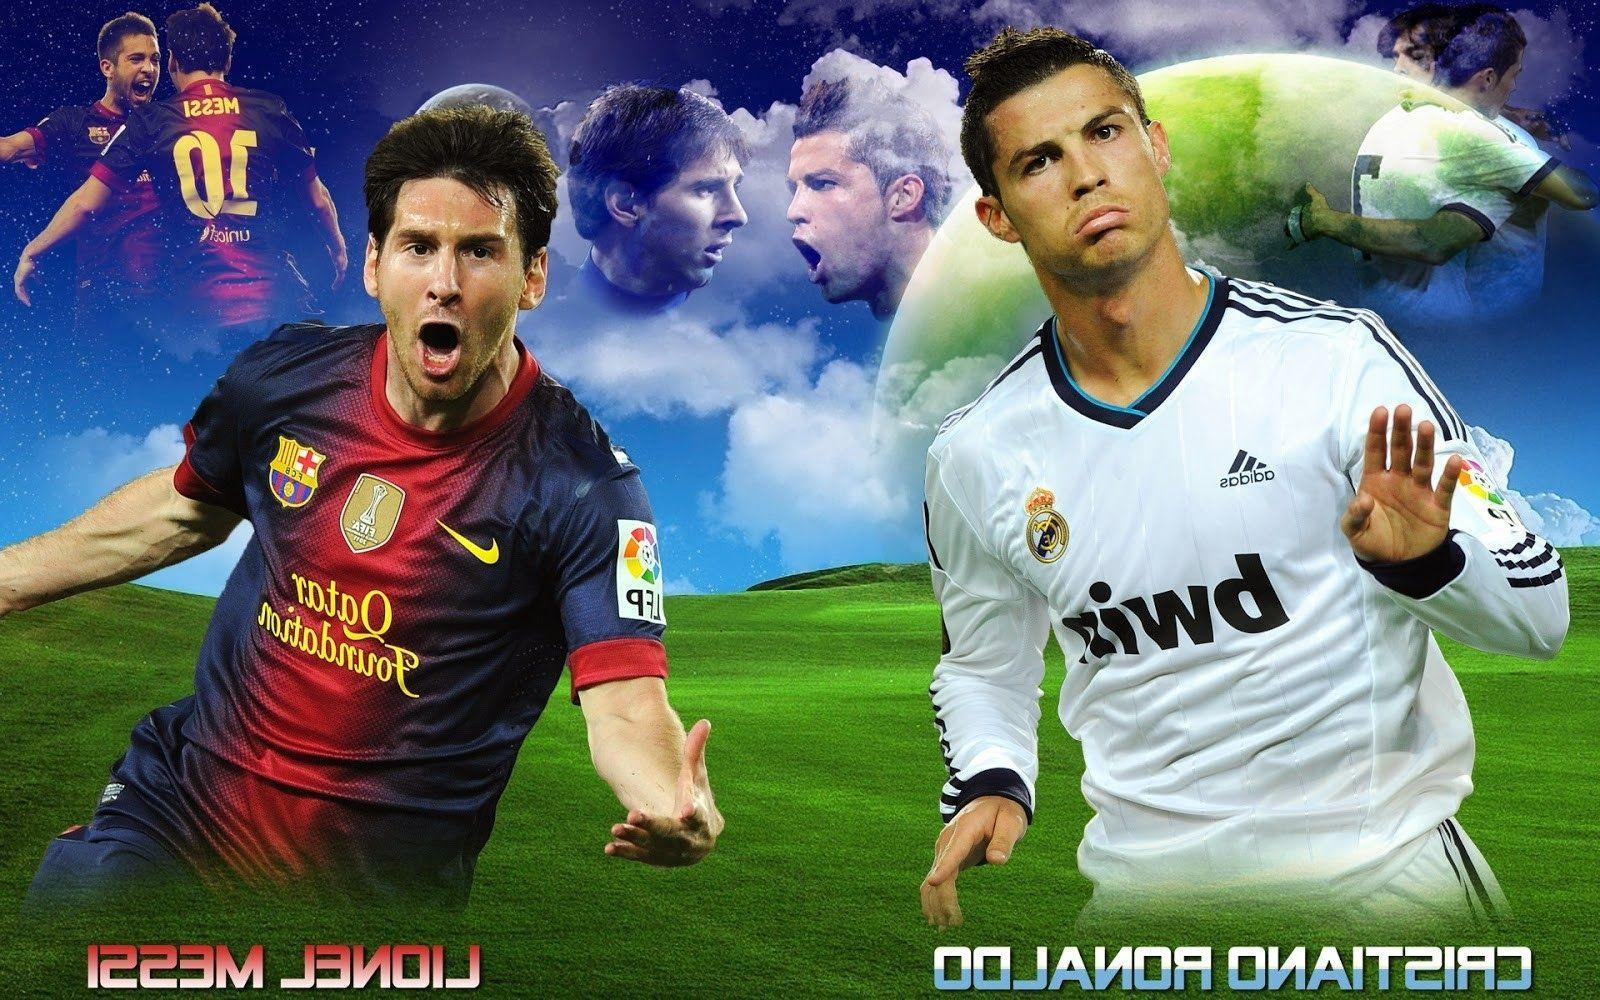 cristiano ronaldo vs lionel messi 2017 wallpapers